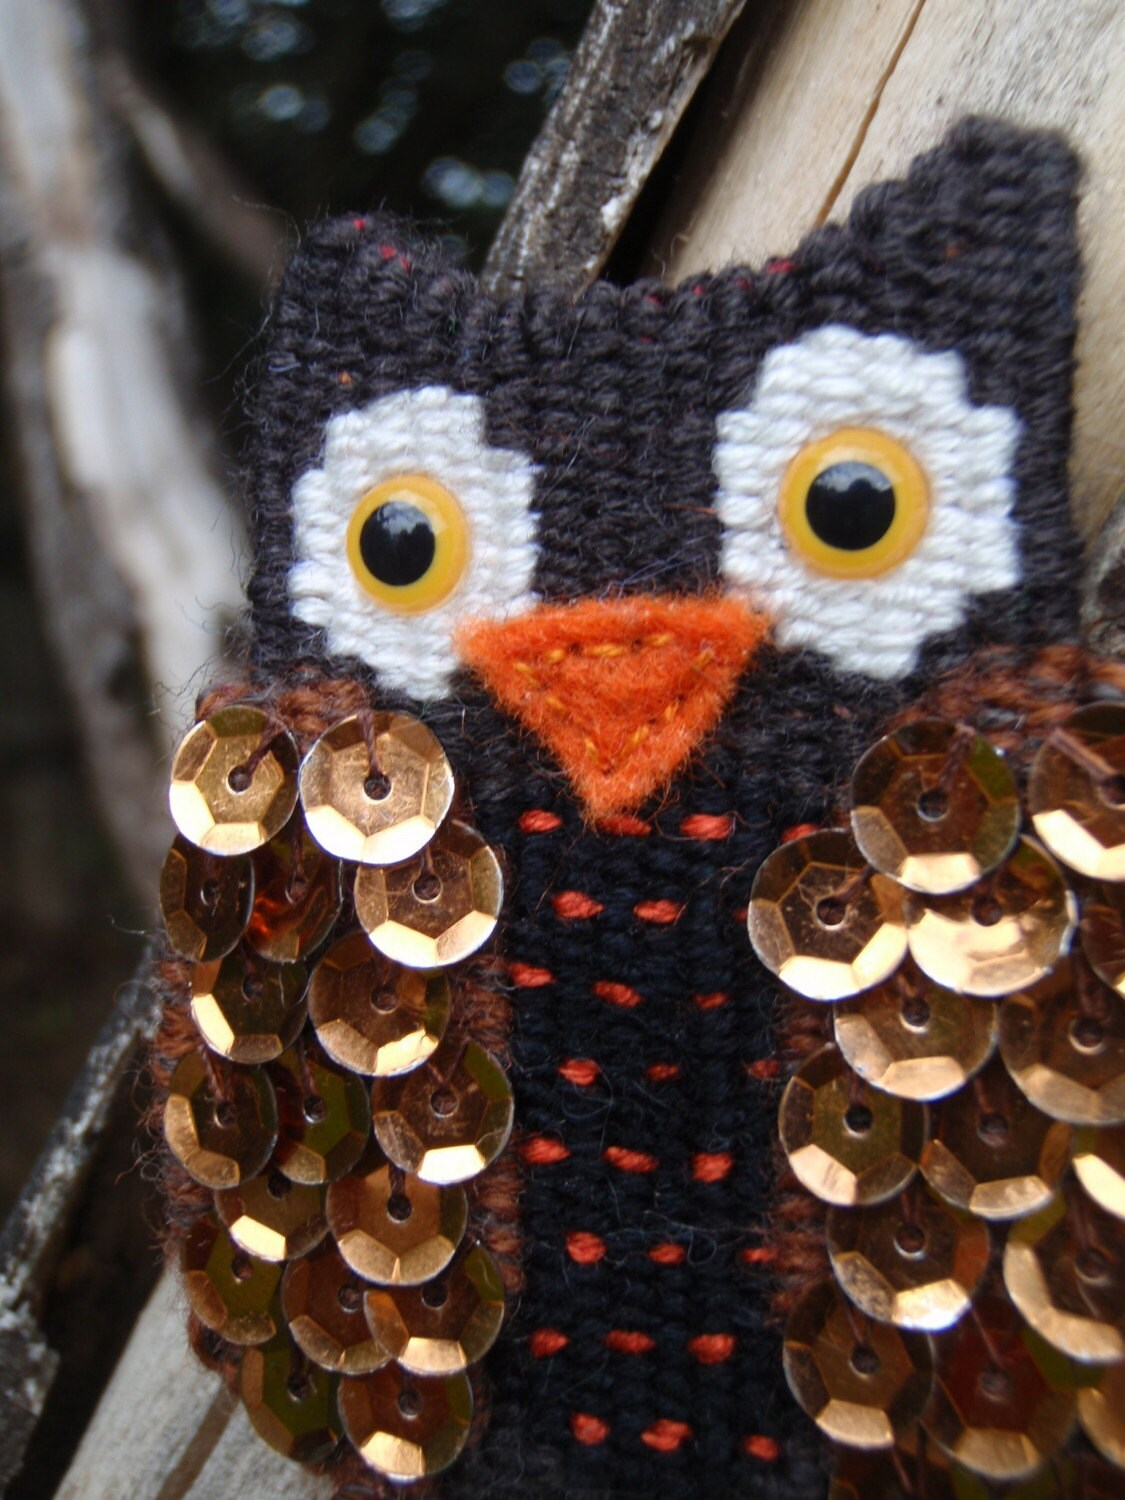 Sequined Woven Wise Owl Brooch